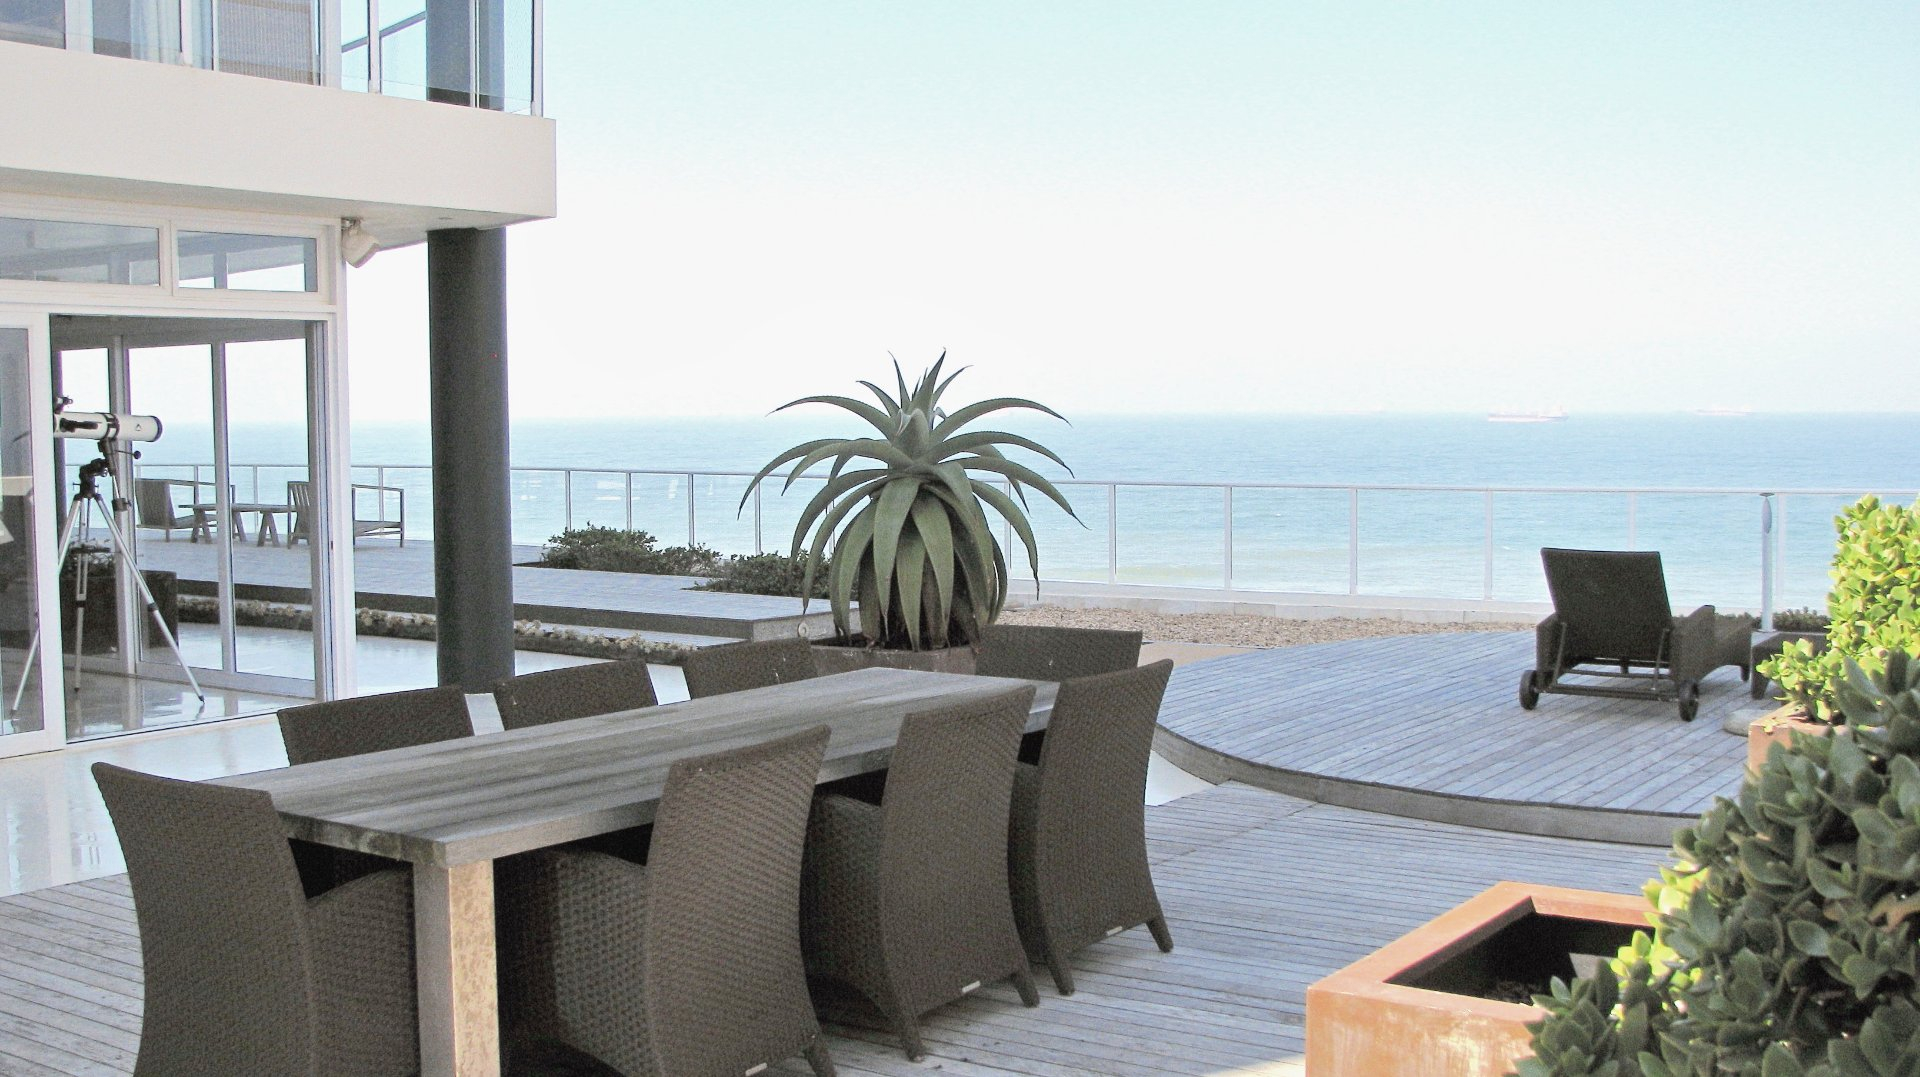 3 BedroomApartment For Sale In Umhlanga